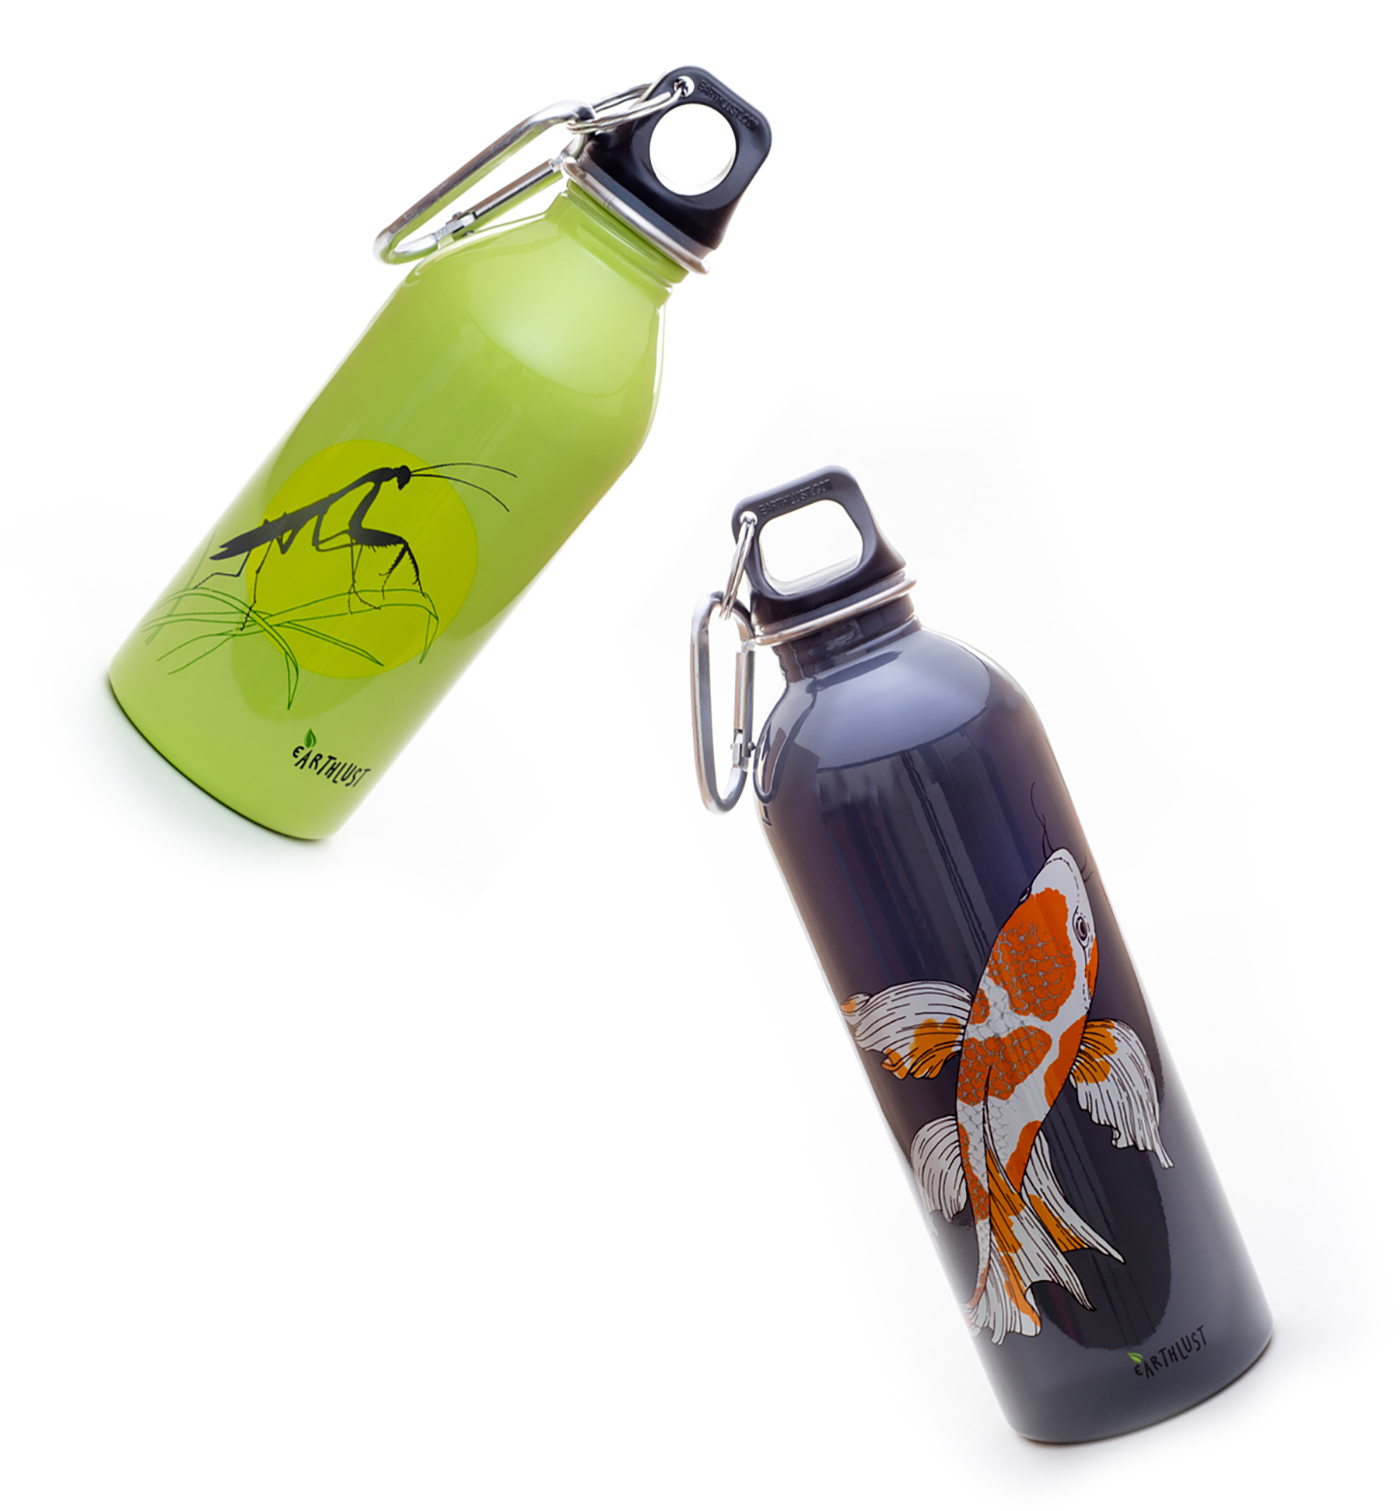 Earth Lust Eco-Friendly Bottles by Yana Beylinson - 02